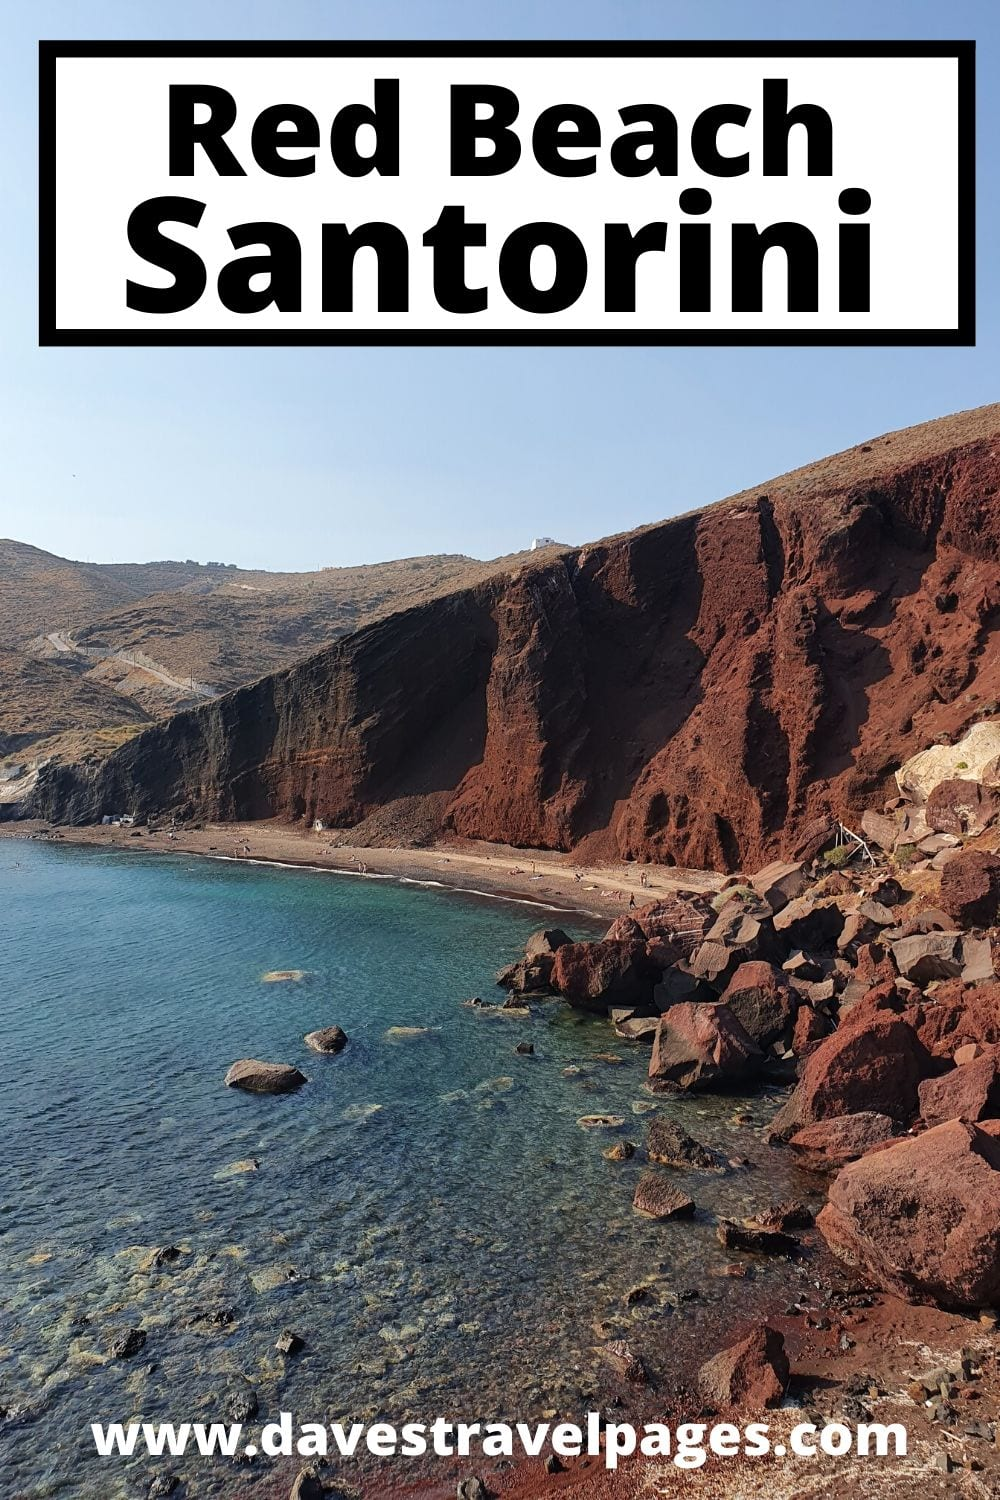 Red Beach Santorini - Information on how to get to Red Beach Santorini, is red beach safe, and more.